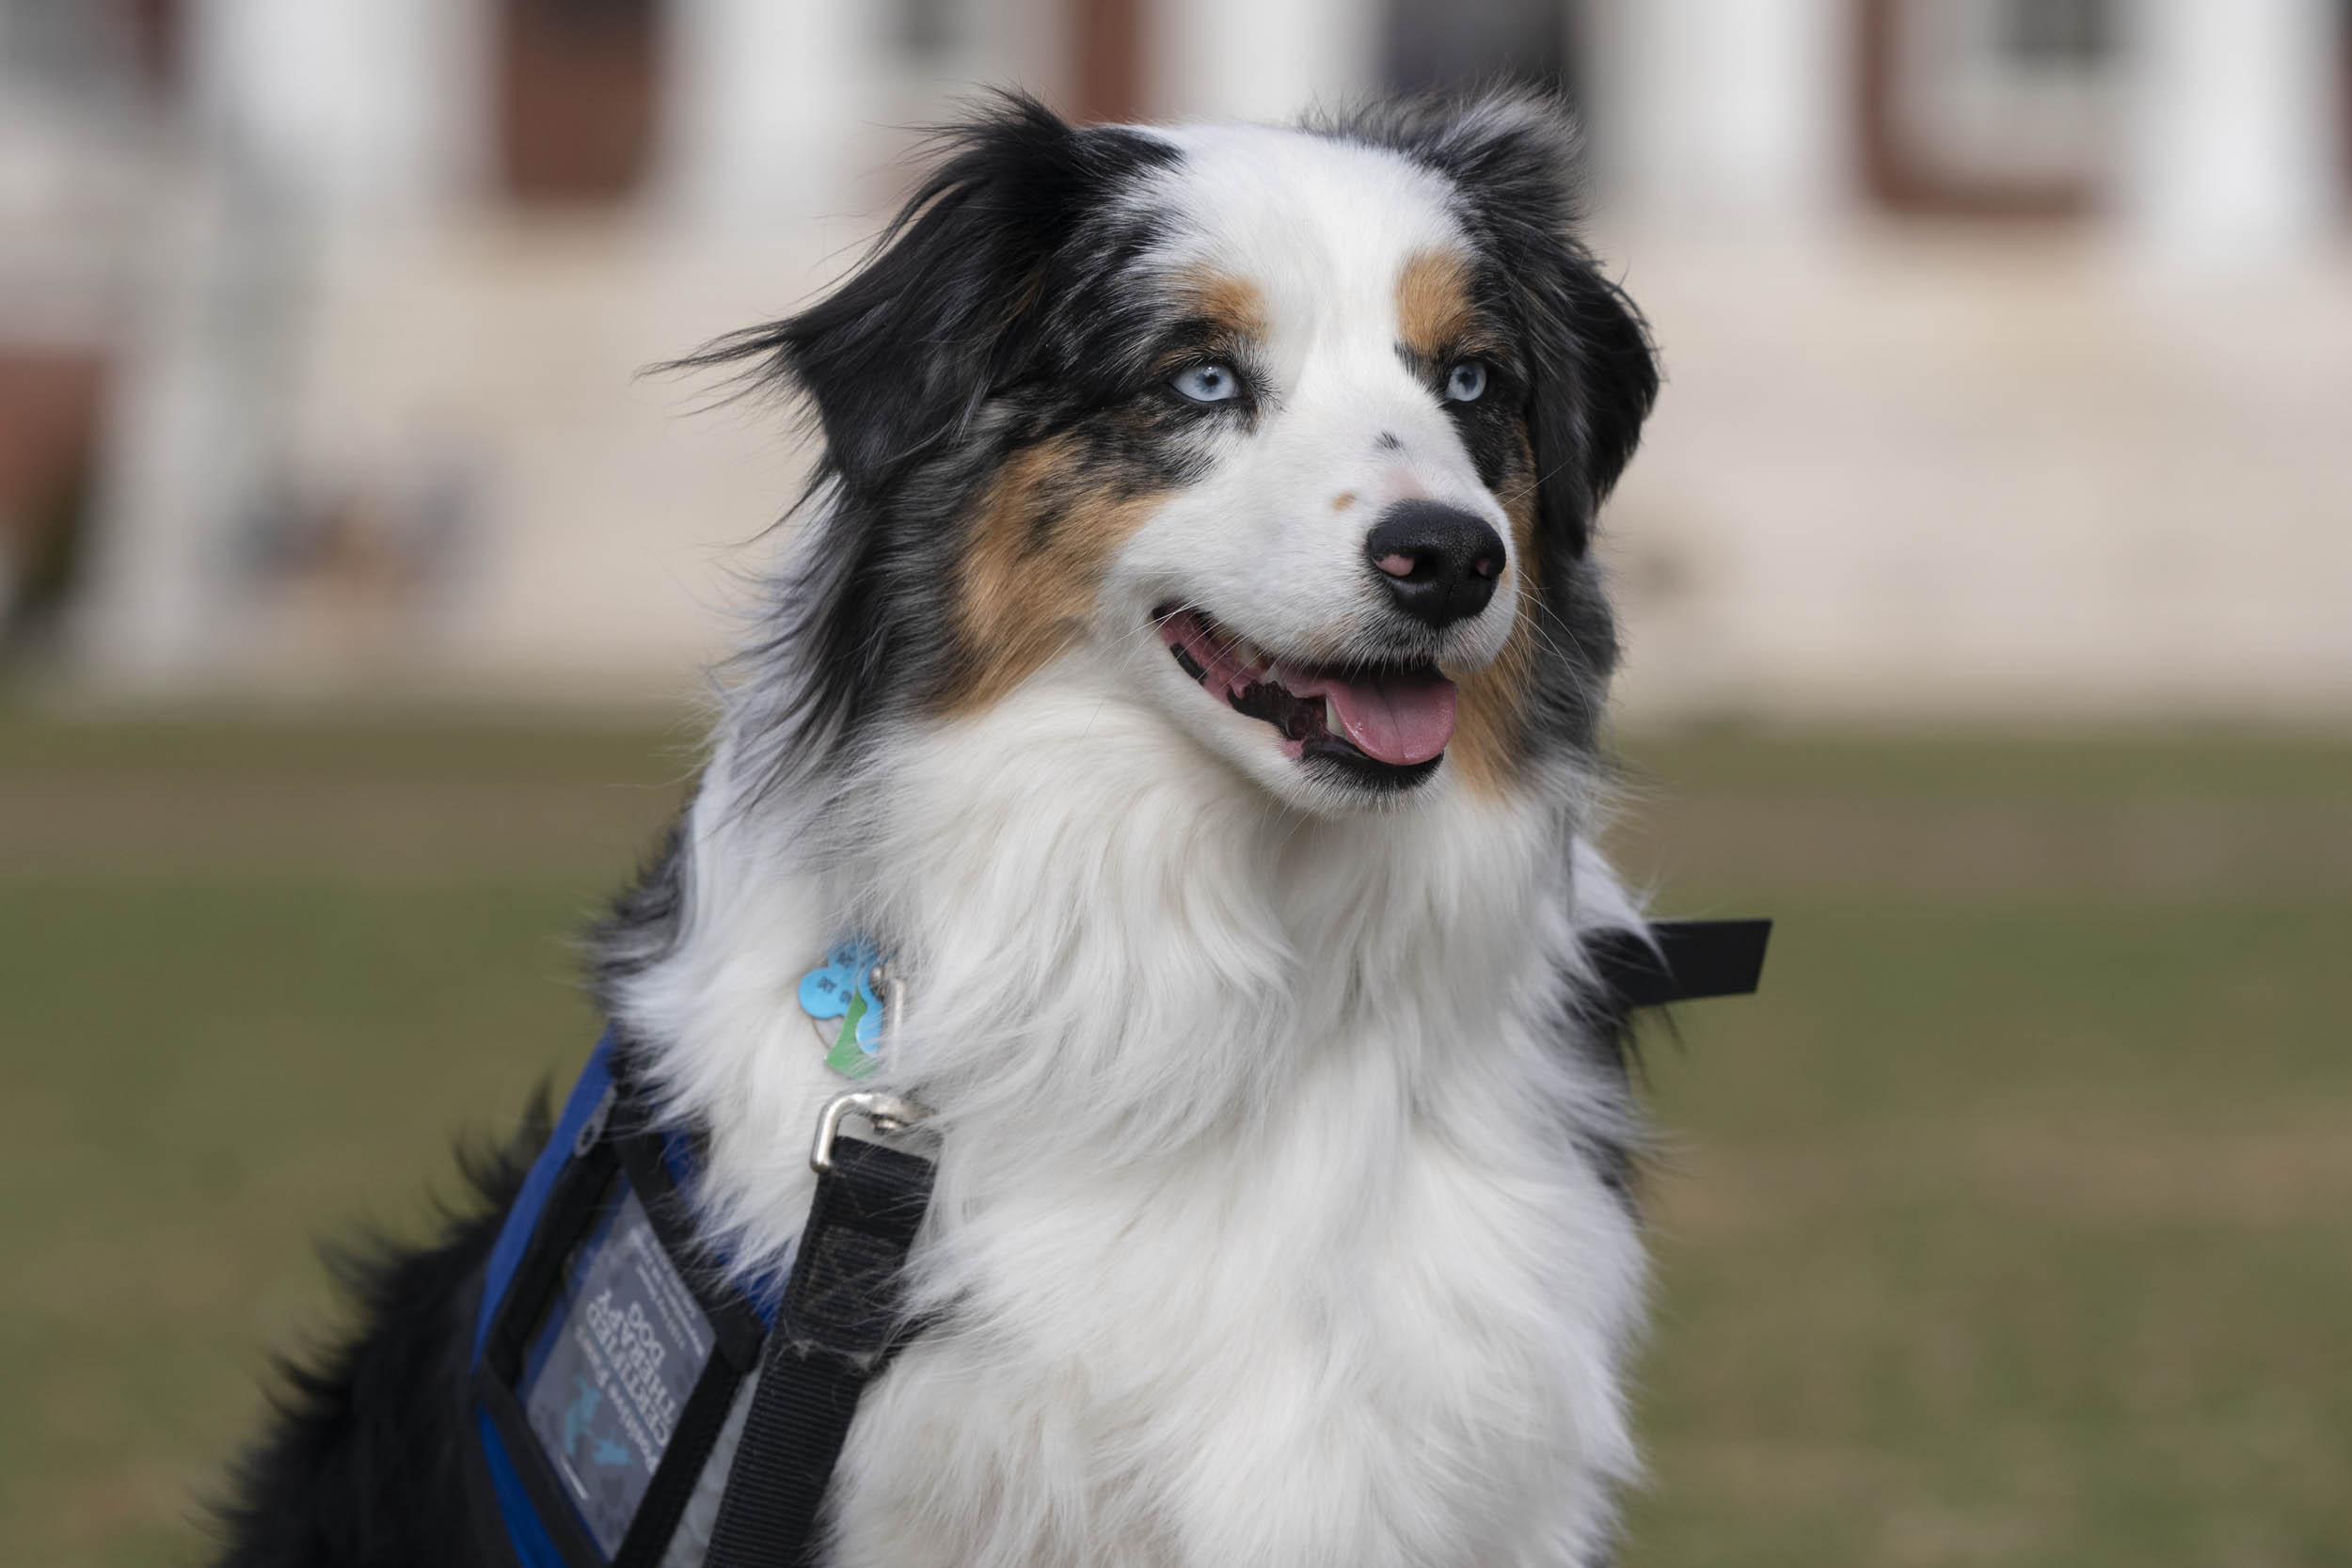 Cooper is a one-and-a-half year old miniature American shepherd.